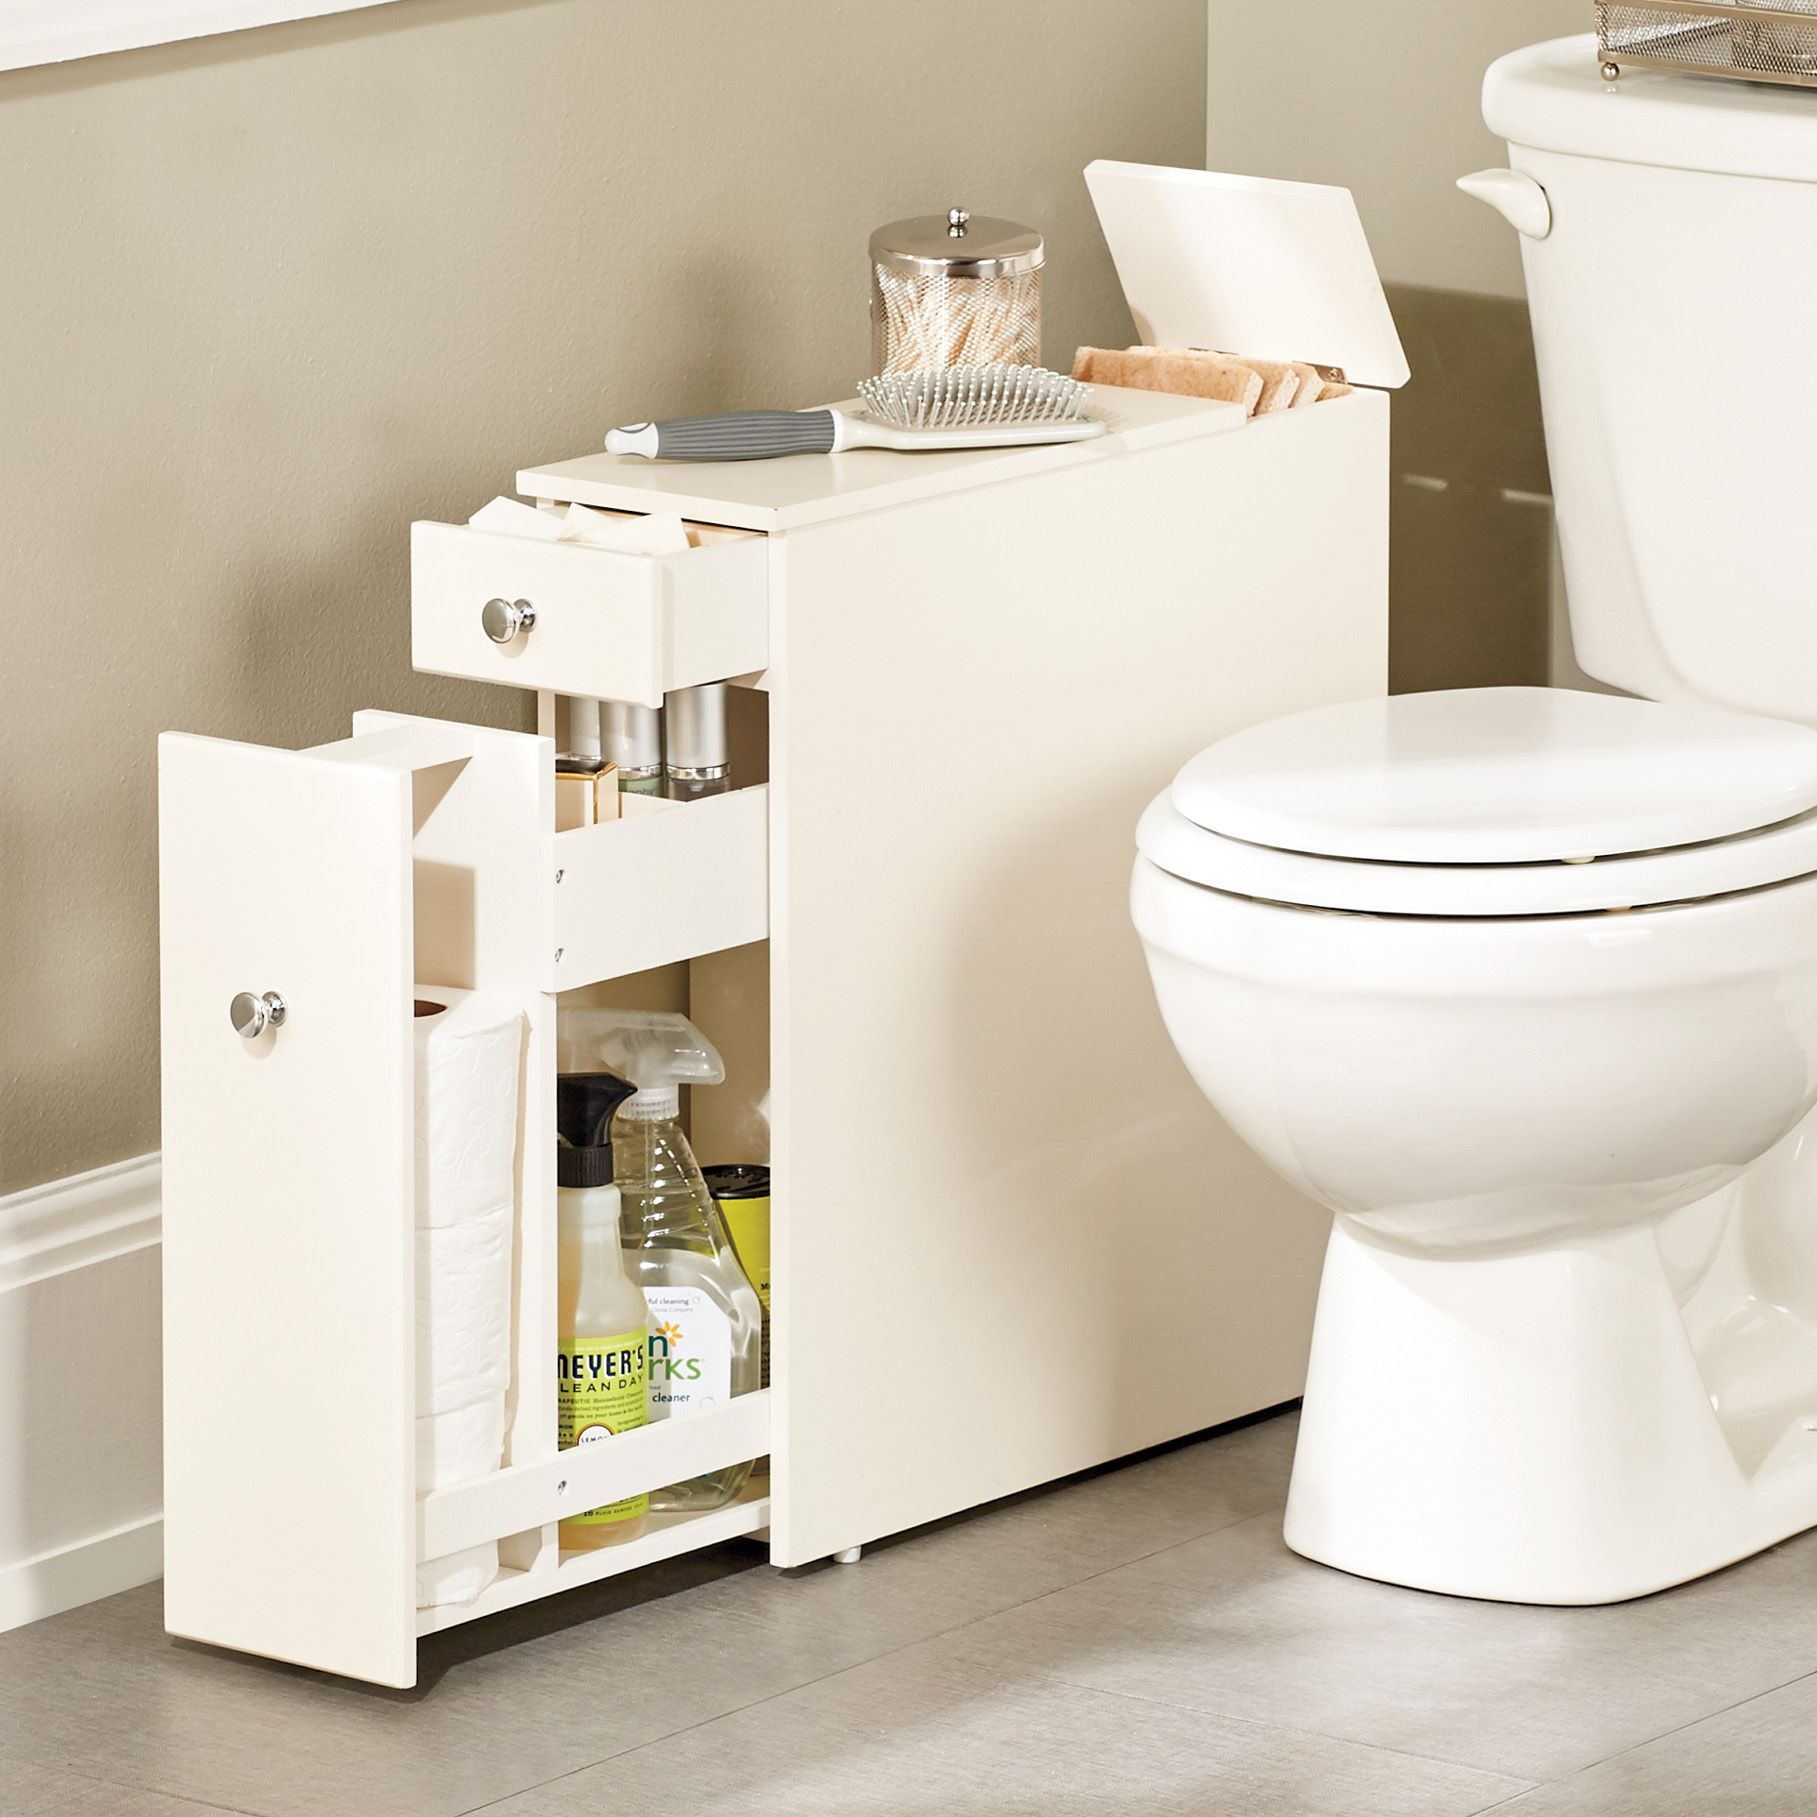 This Narrow, Stylized Bath Cabinet Is Thin Enough To Fit In That Small Space Between The Toilet